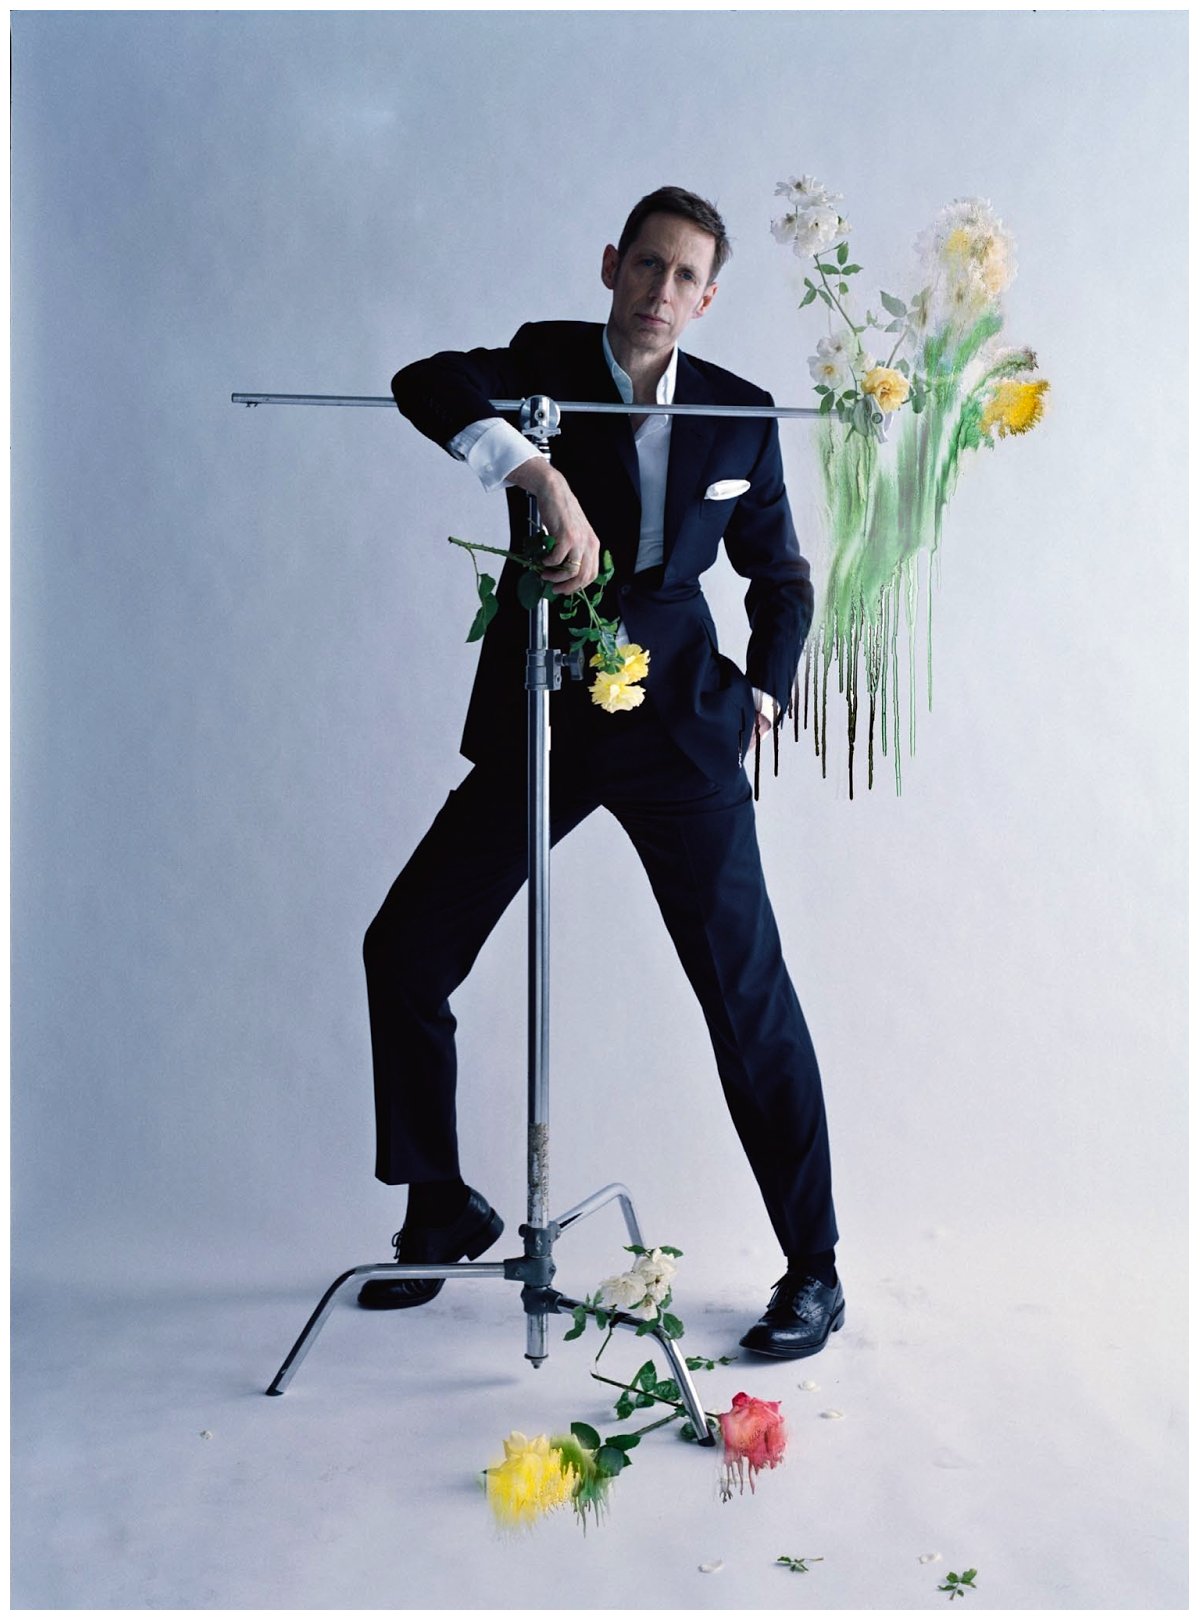 <b>NICK KNIGHT Wins a B...</b>